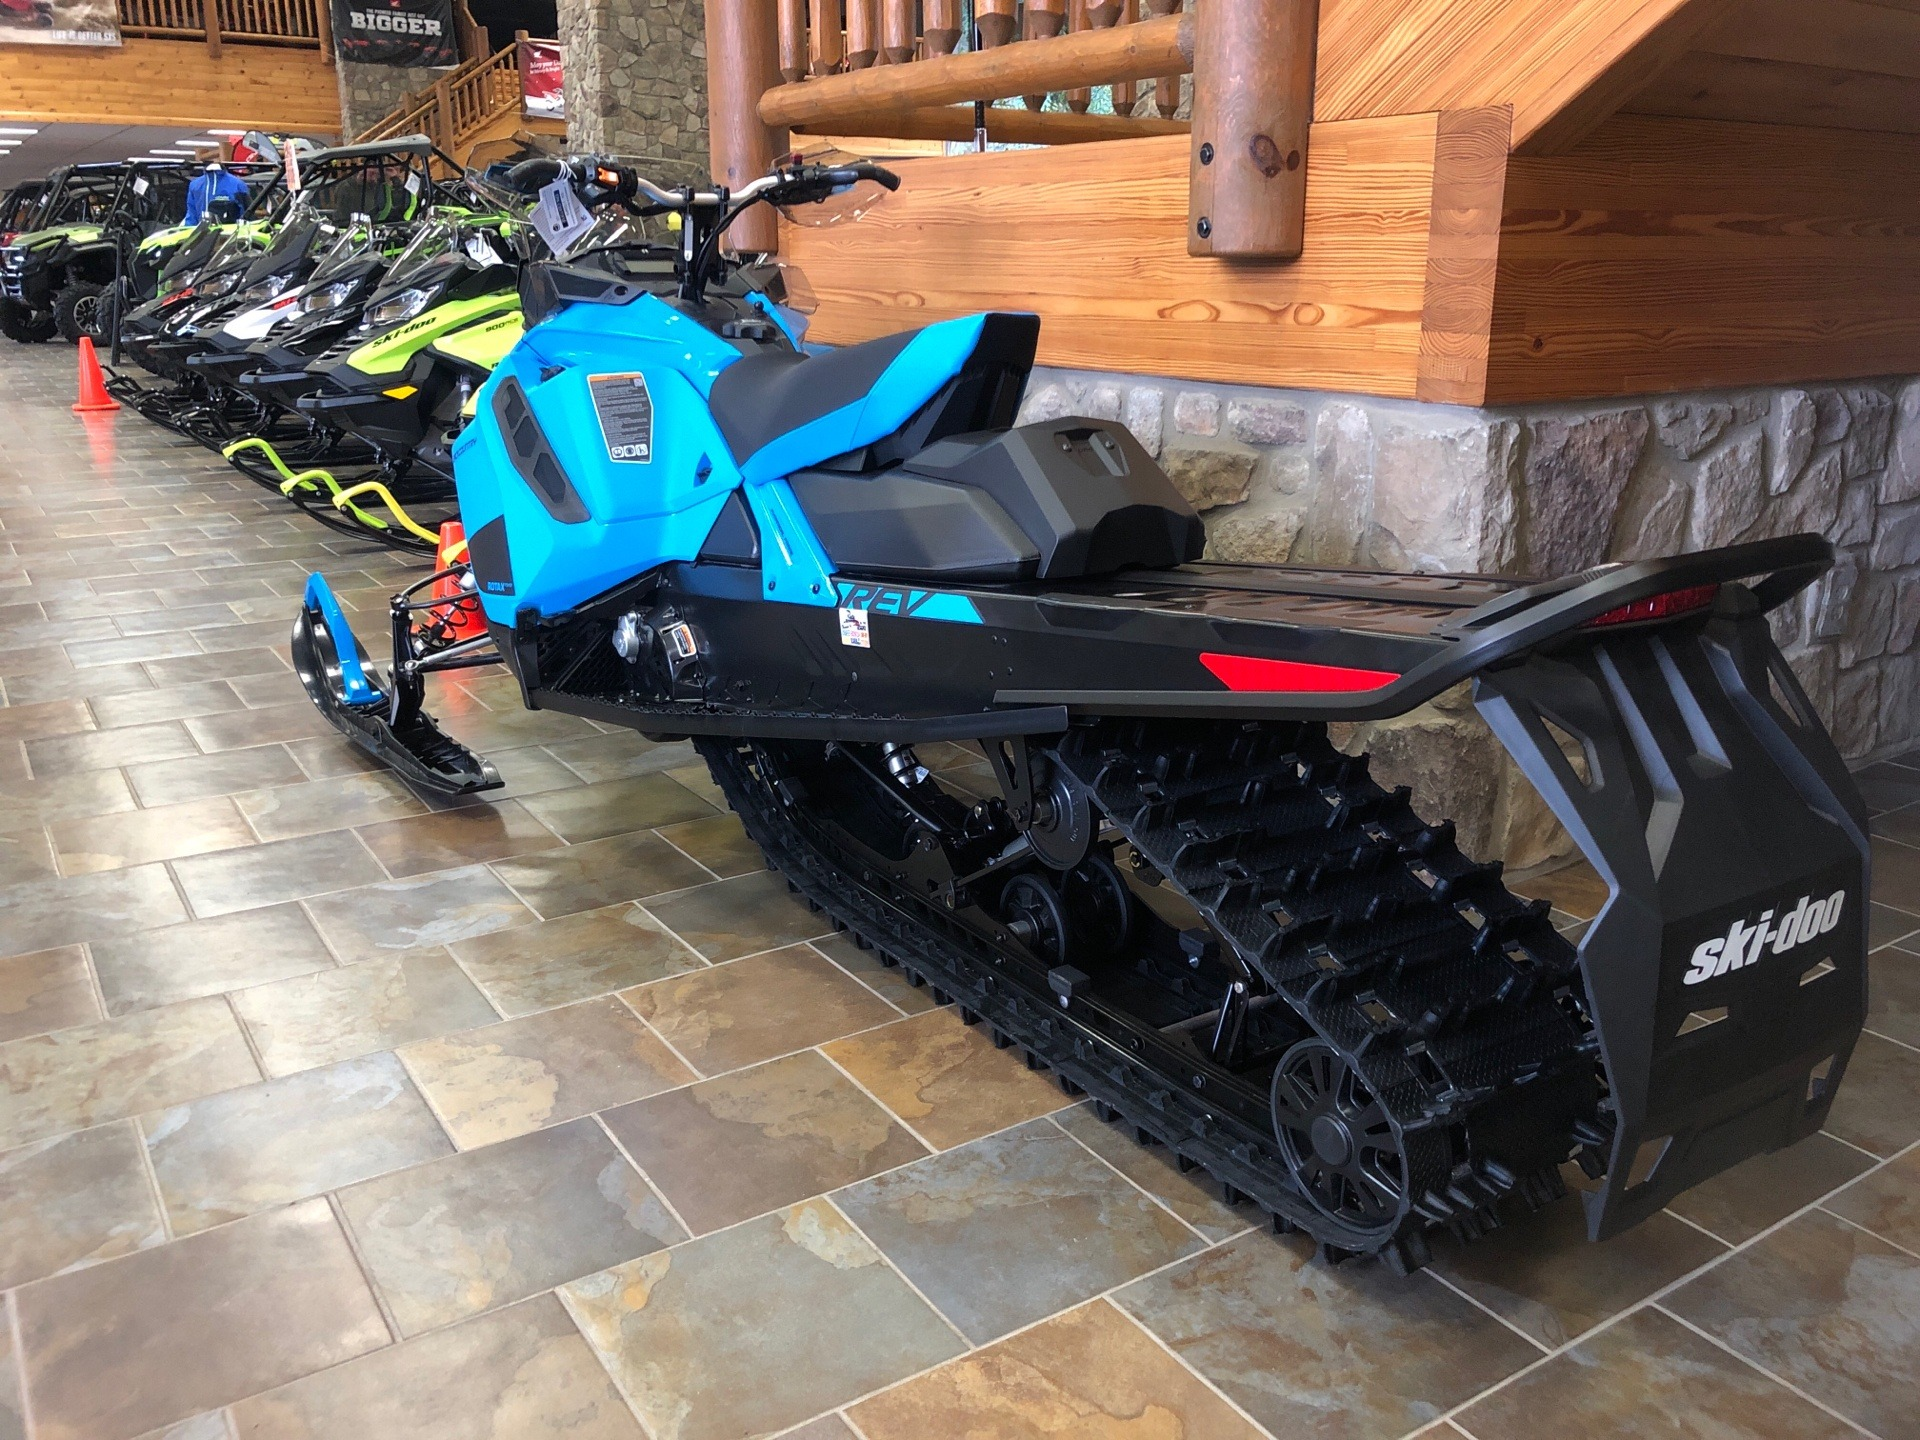 2020 Ski-Doo Backcountry 850 E-TEC ES in Honesdale, Pennsylvania - Photo 2